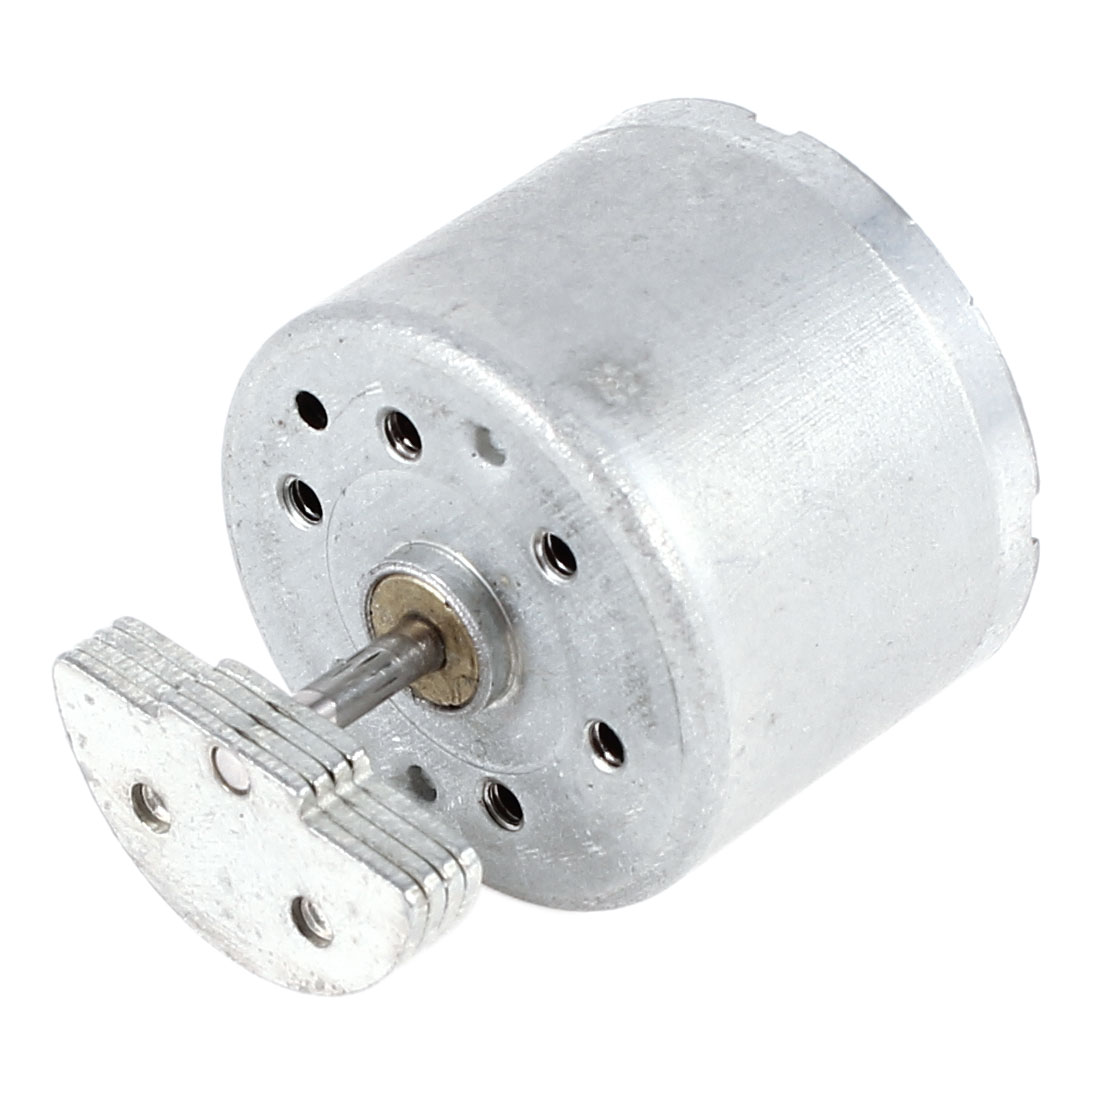 DC 3-6V 4500RPM Rotary Speed 24mm Diameter Electric Vibrating Motor Replacement